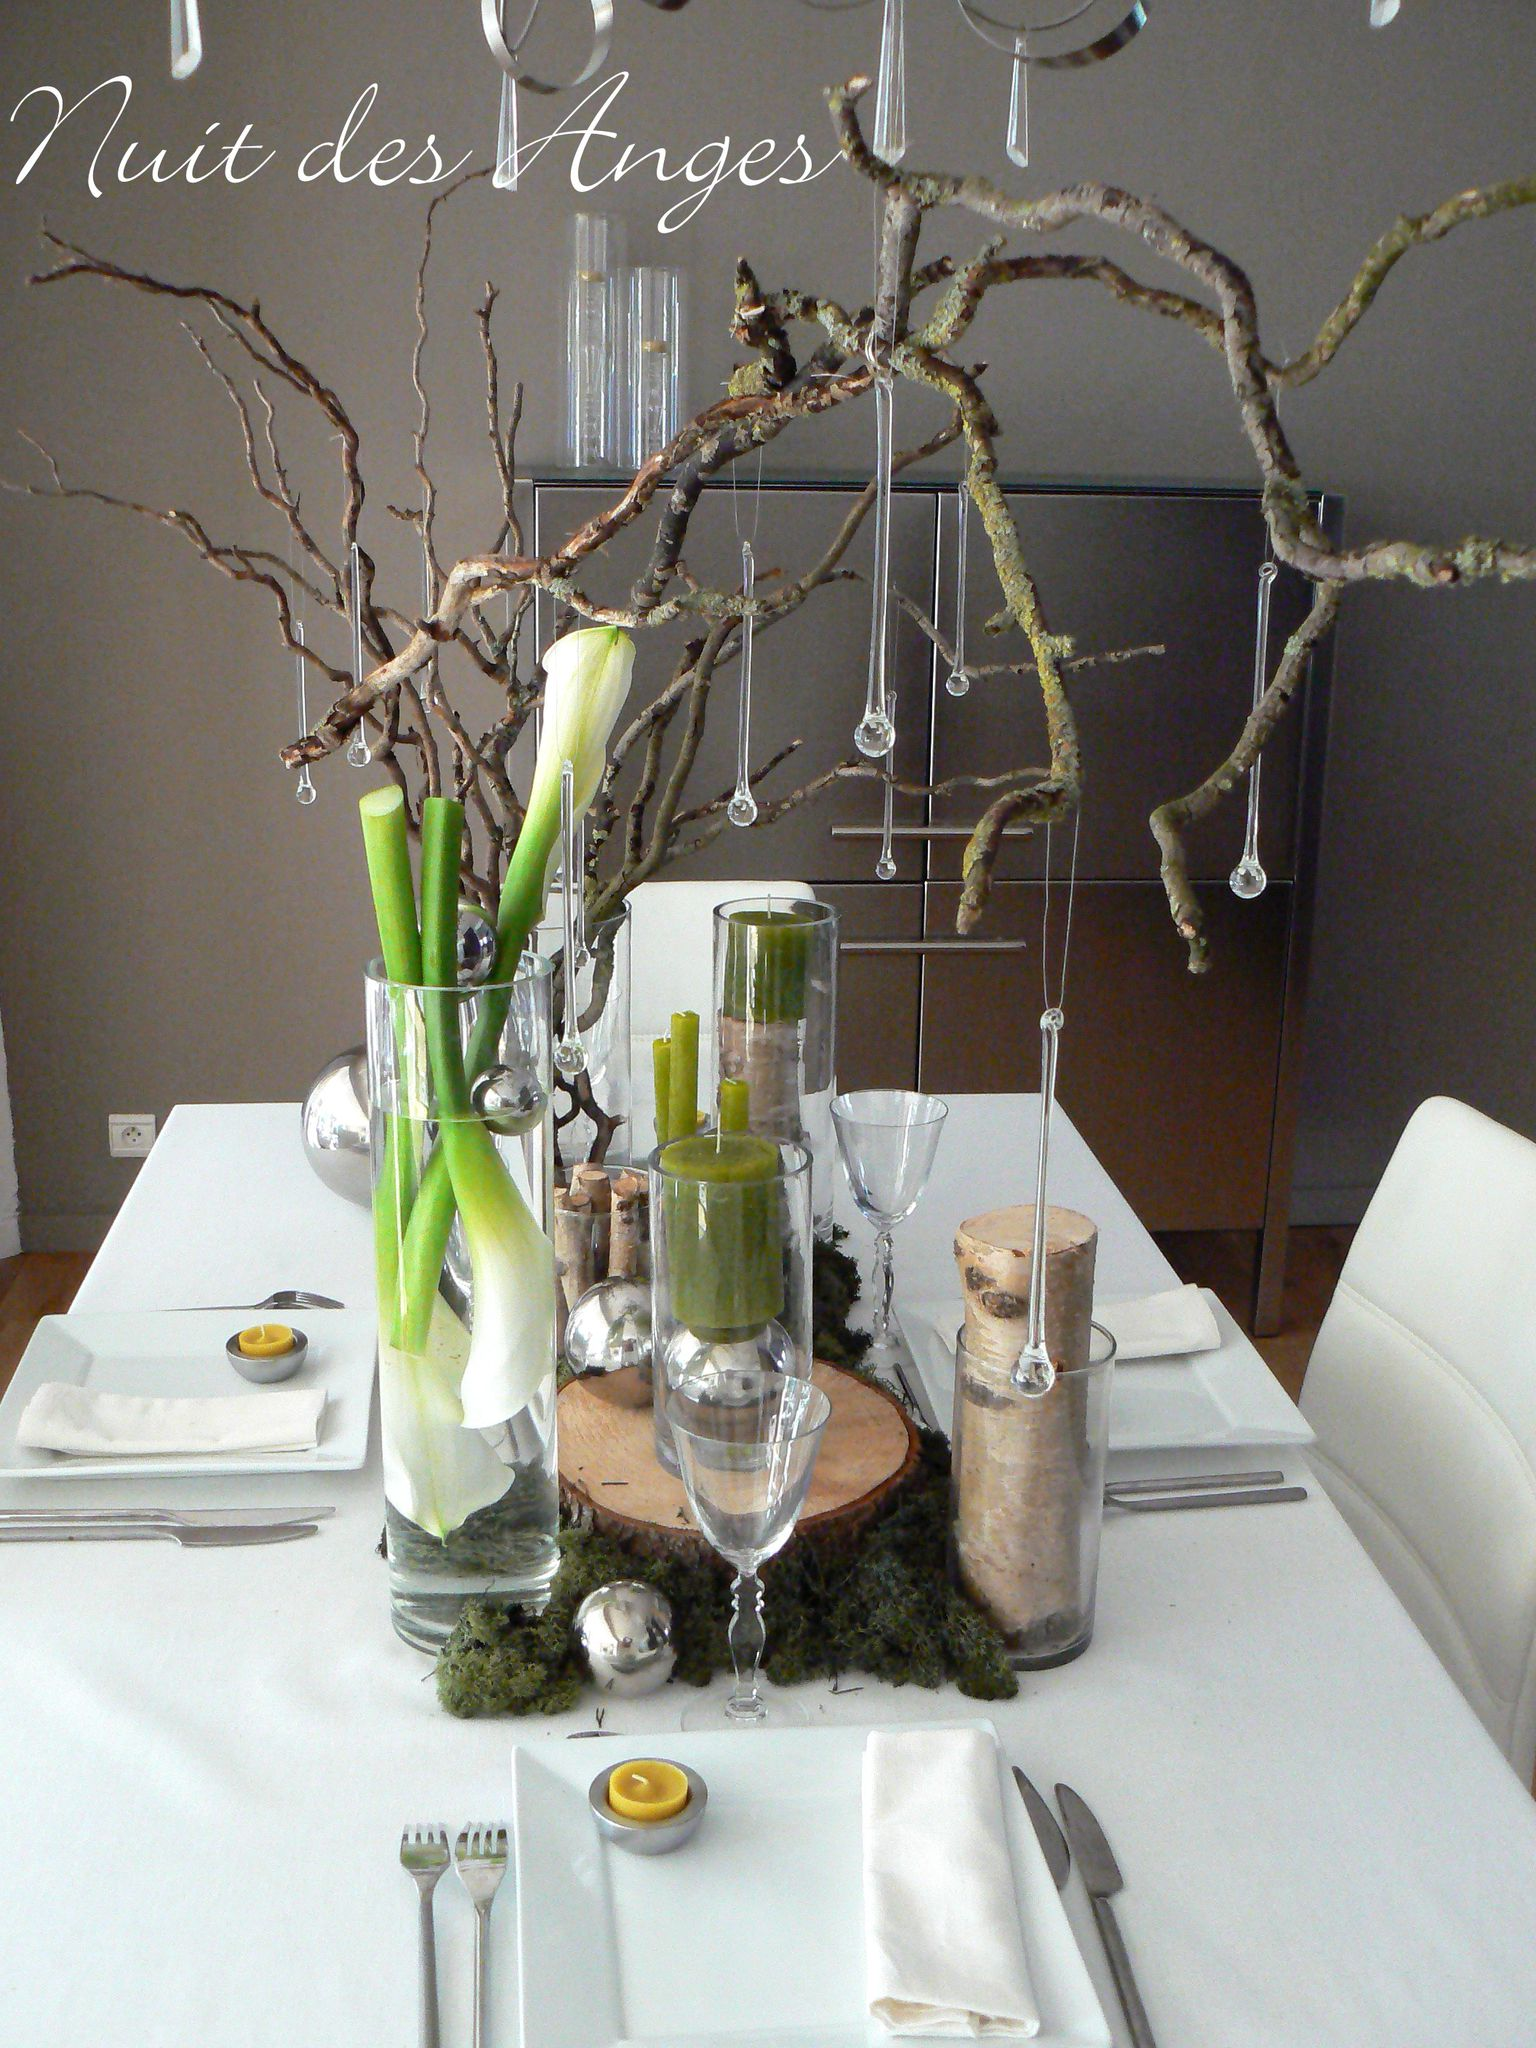 Nuit des anges d coratrice de mariage d coration de table jardin nature 001 - Decoration de table nature ...